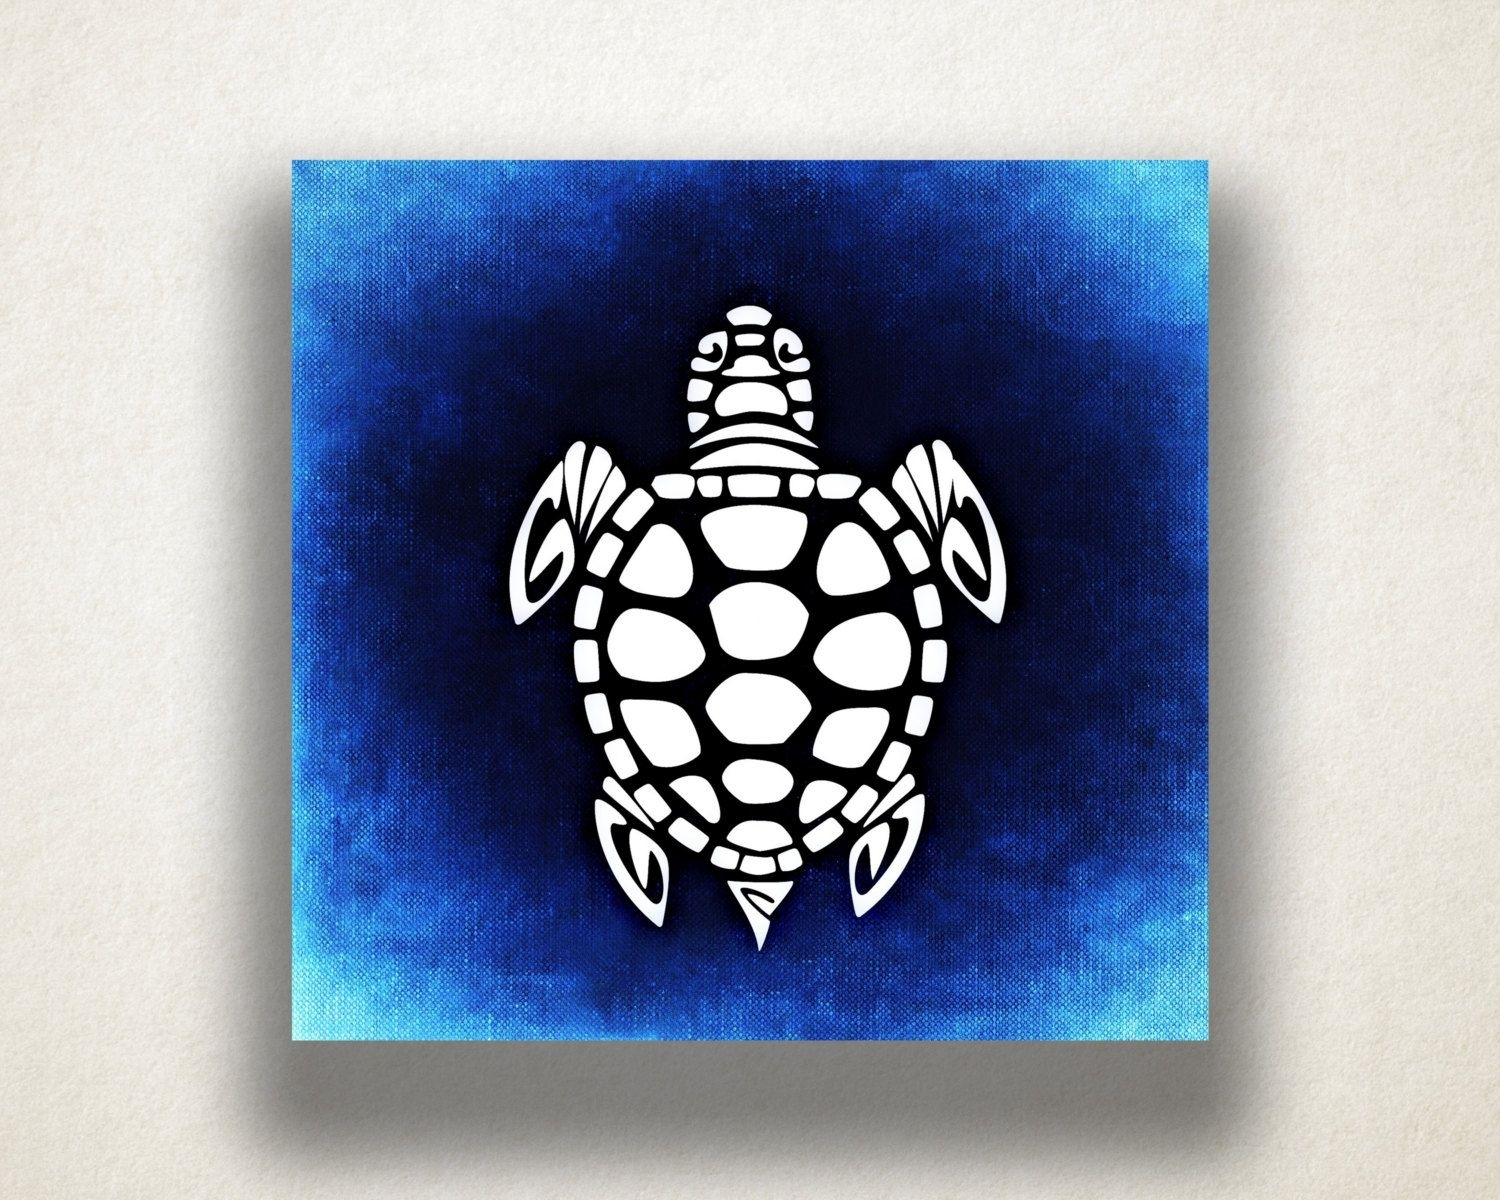 Blue Sea Turtle Canvas Art Print, Oceanlife Wall Art, Animal Canvas Intended For Recent Sea Turtle Canvas Wall Art (View 5 of 20)